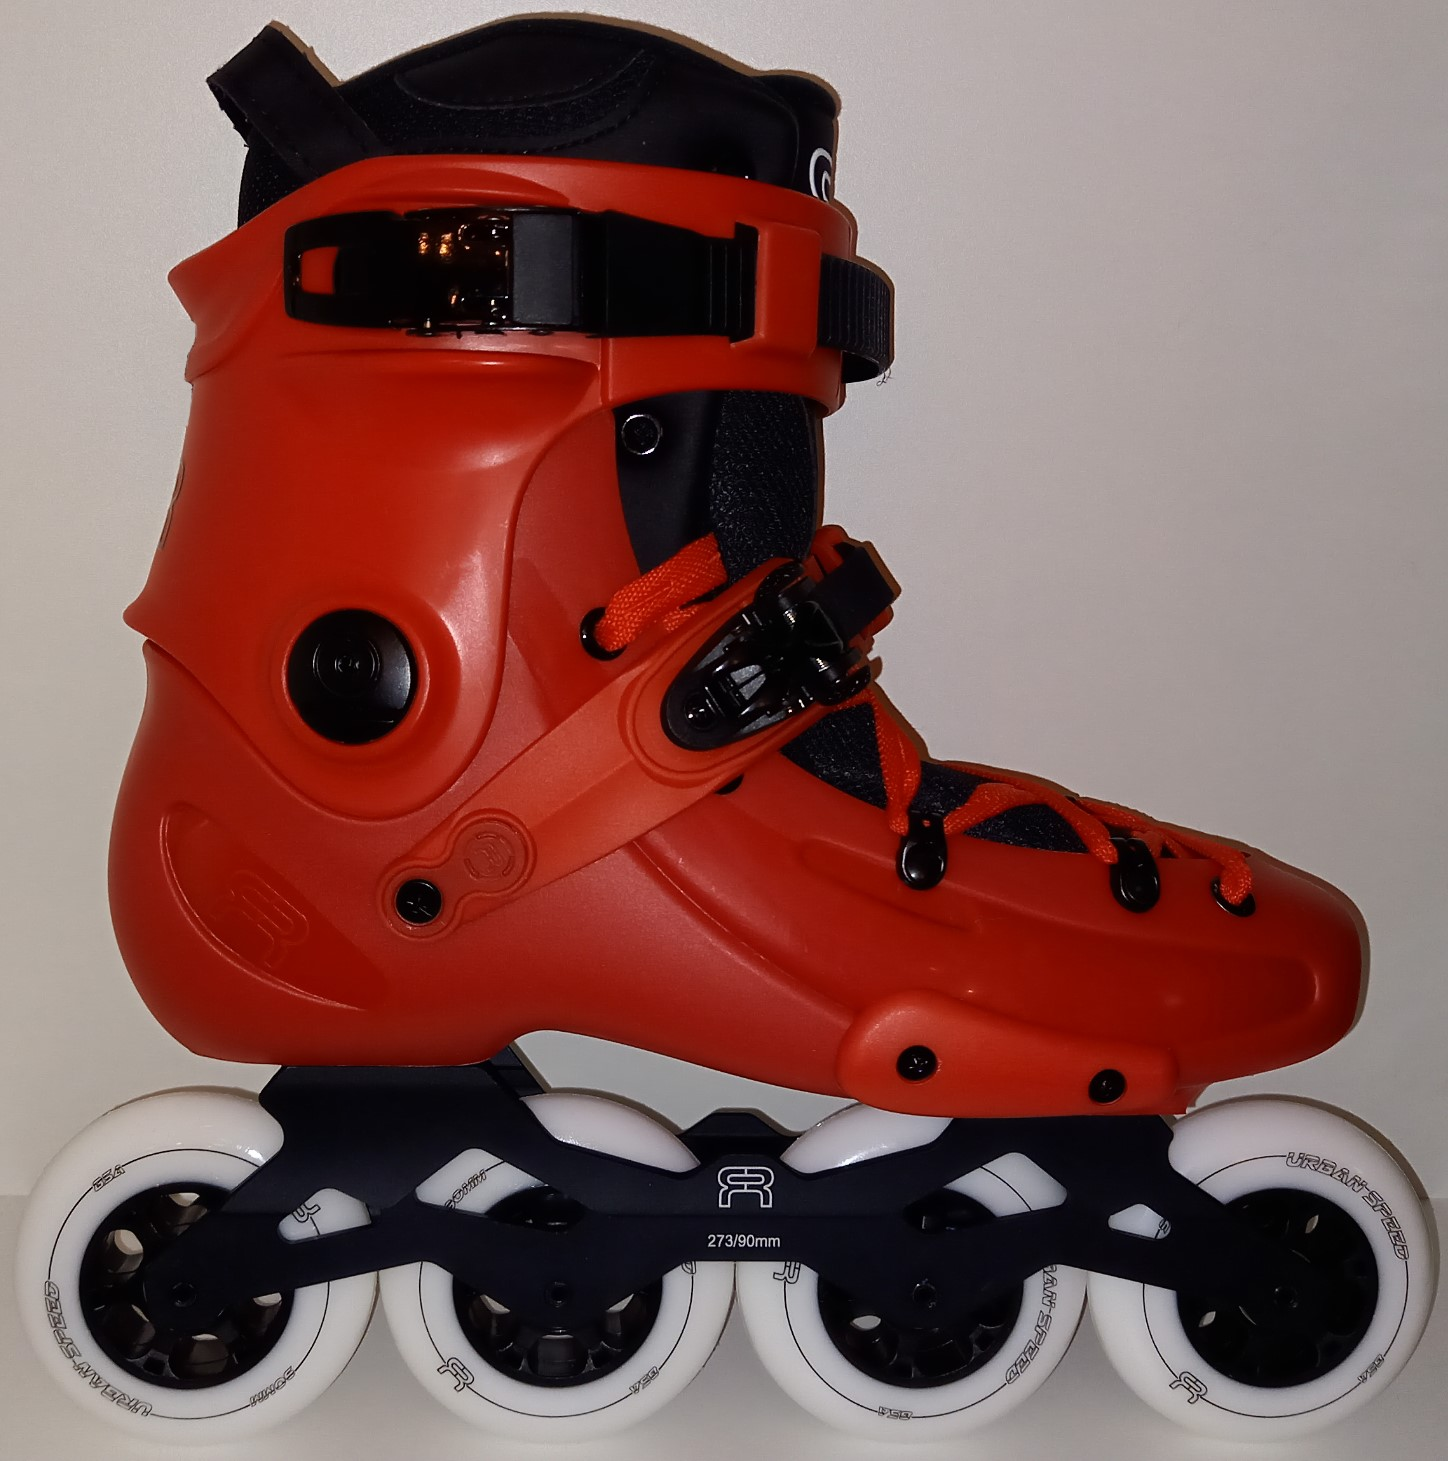 red FR1 90 inline skate for fitness and freeride with white 90 mm wheels